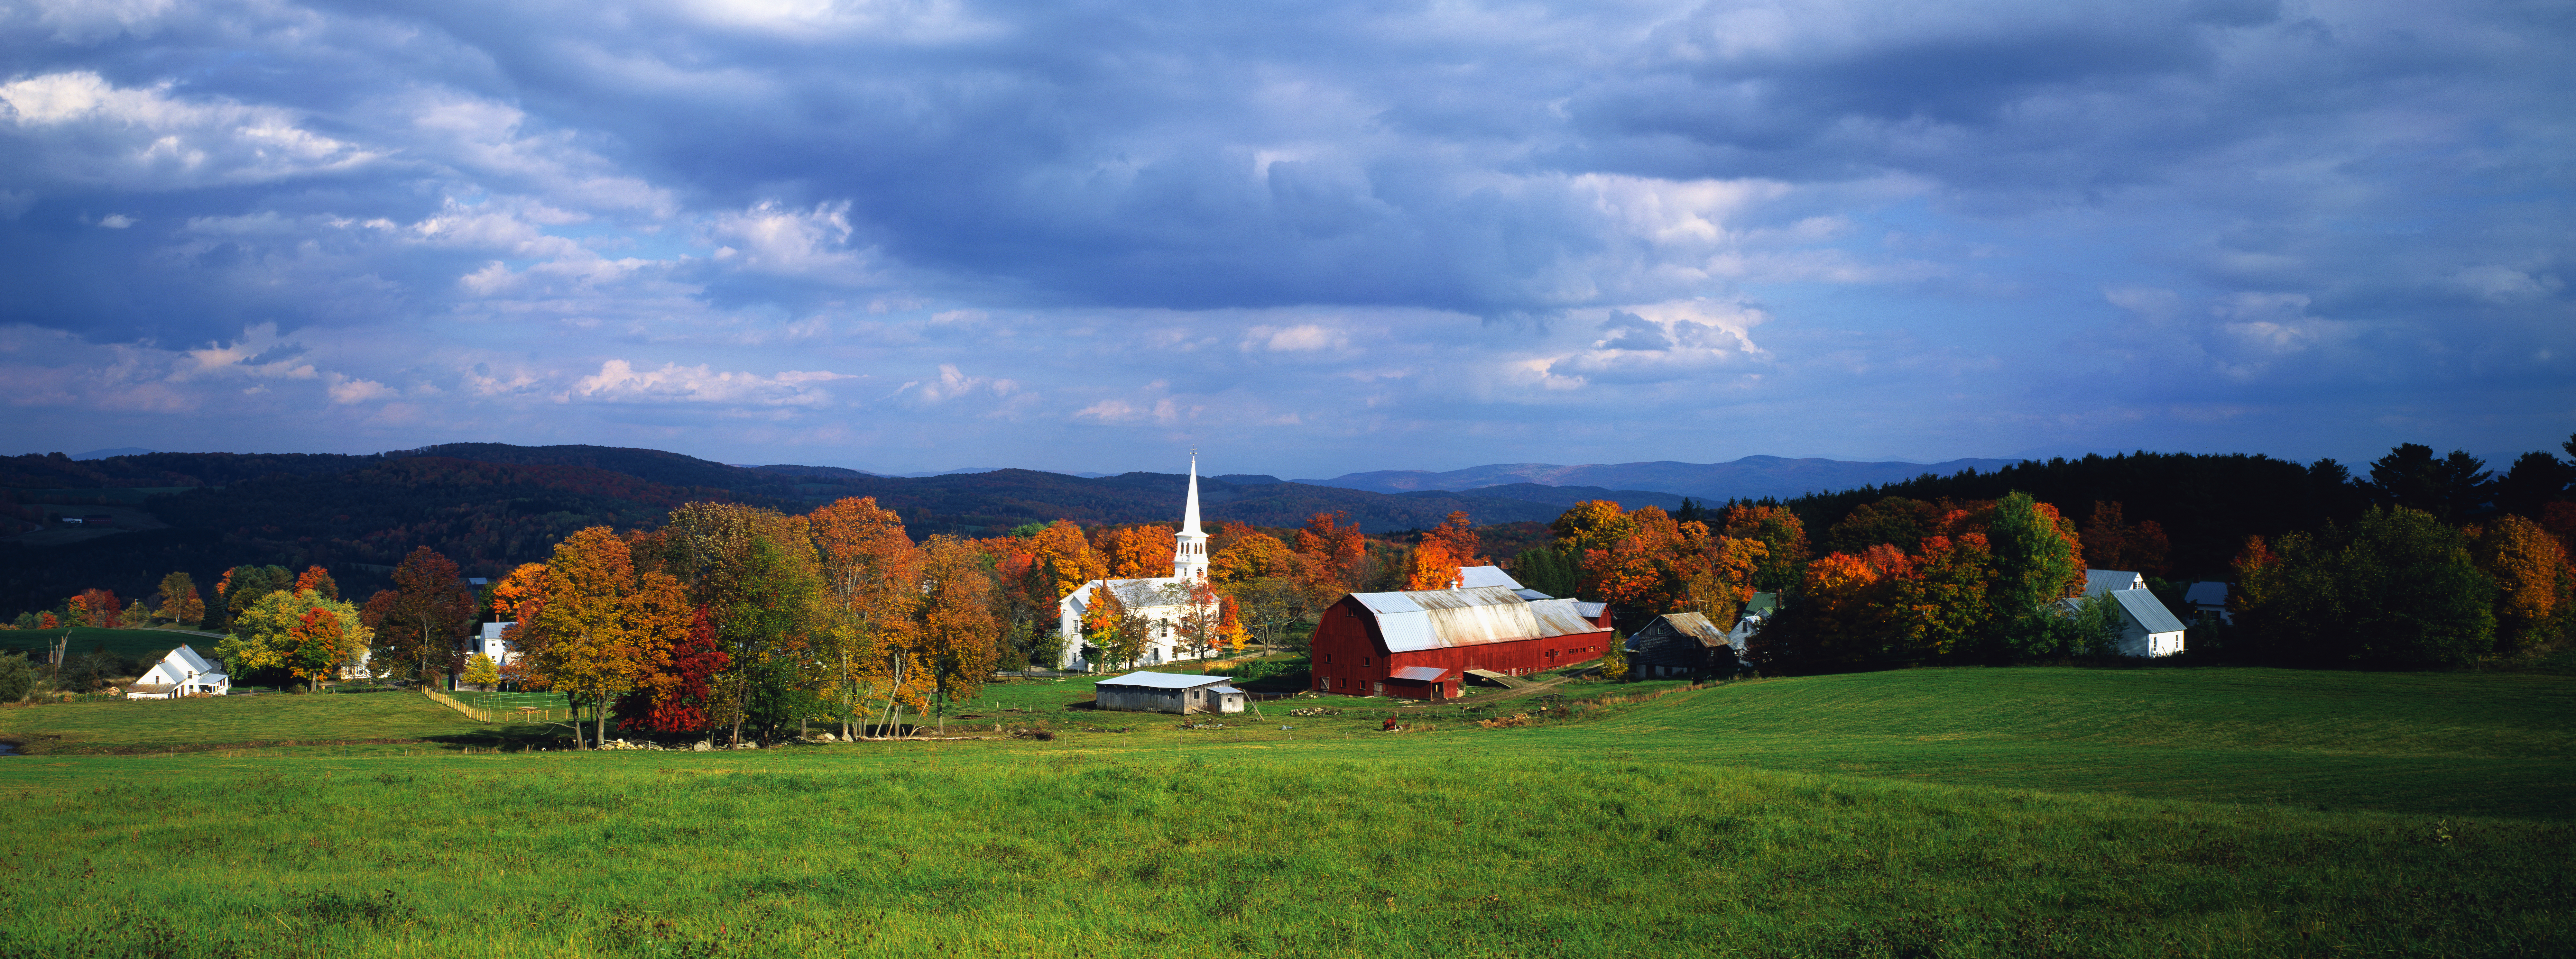 white church with steeple, red barn and pasture land in countryside scene